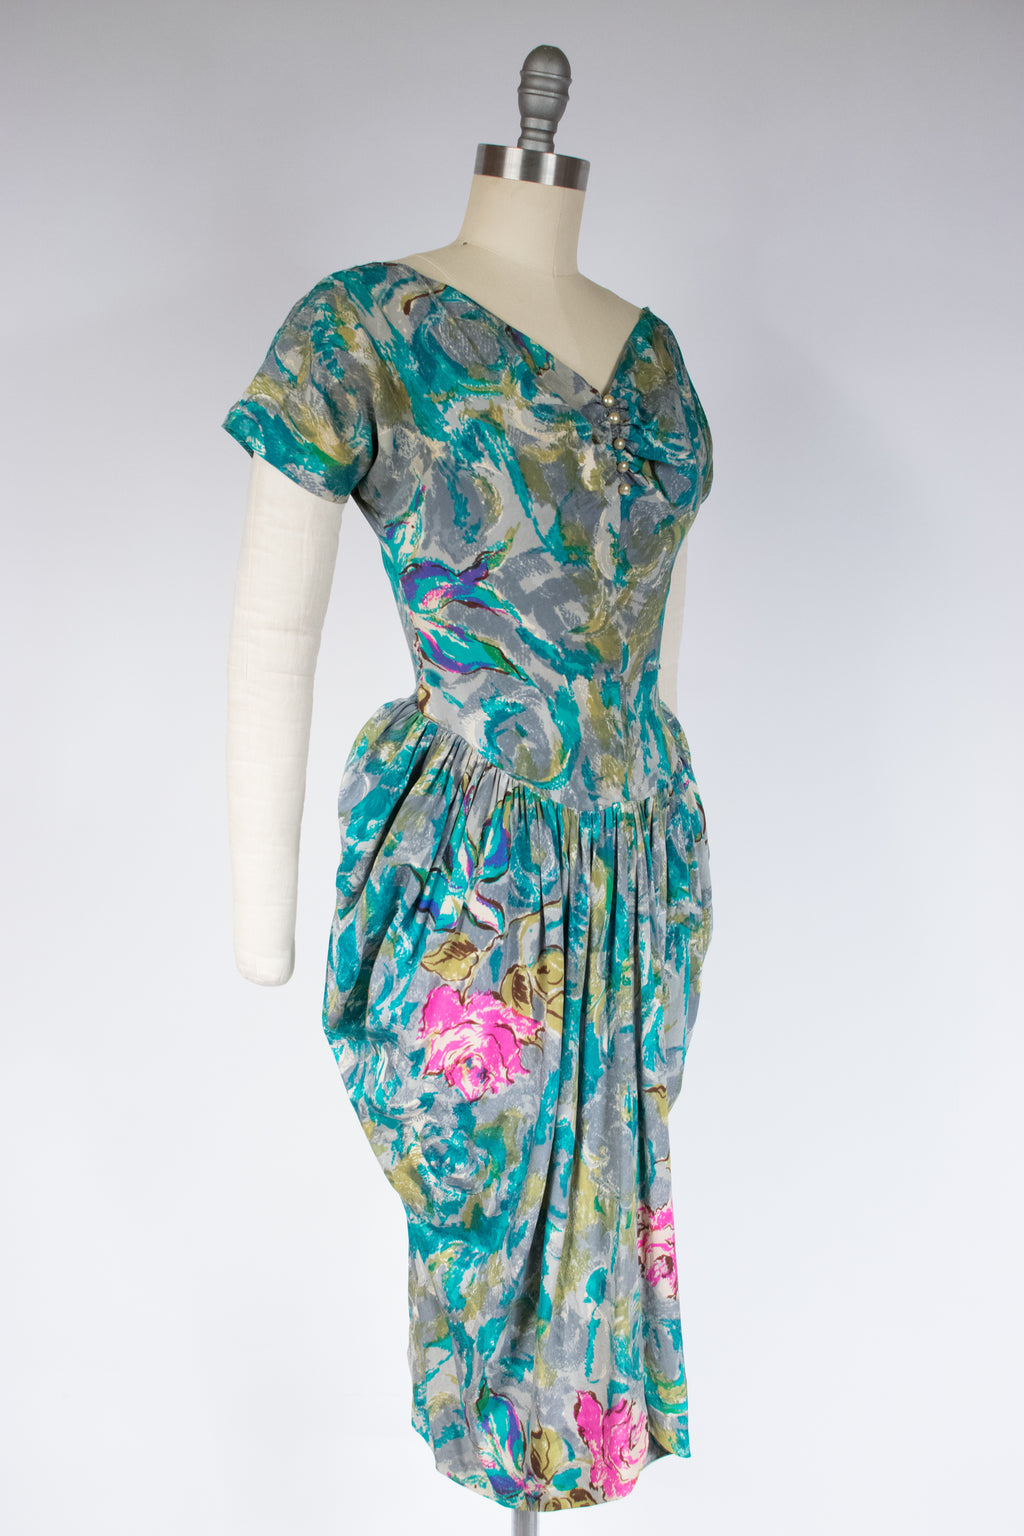 Striking Postwar 190s Dramatic Silk Dress with Bold Roses Print and Uniquely Draped Skirt